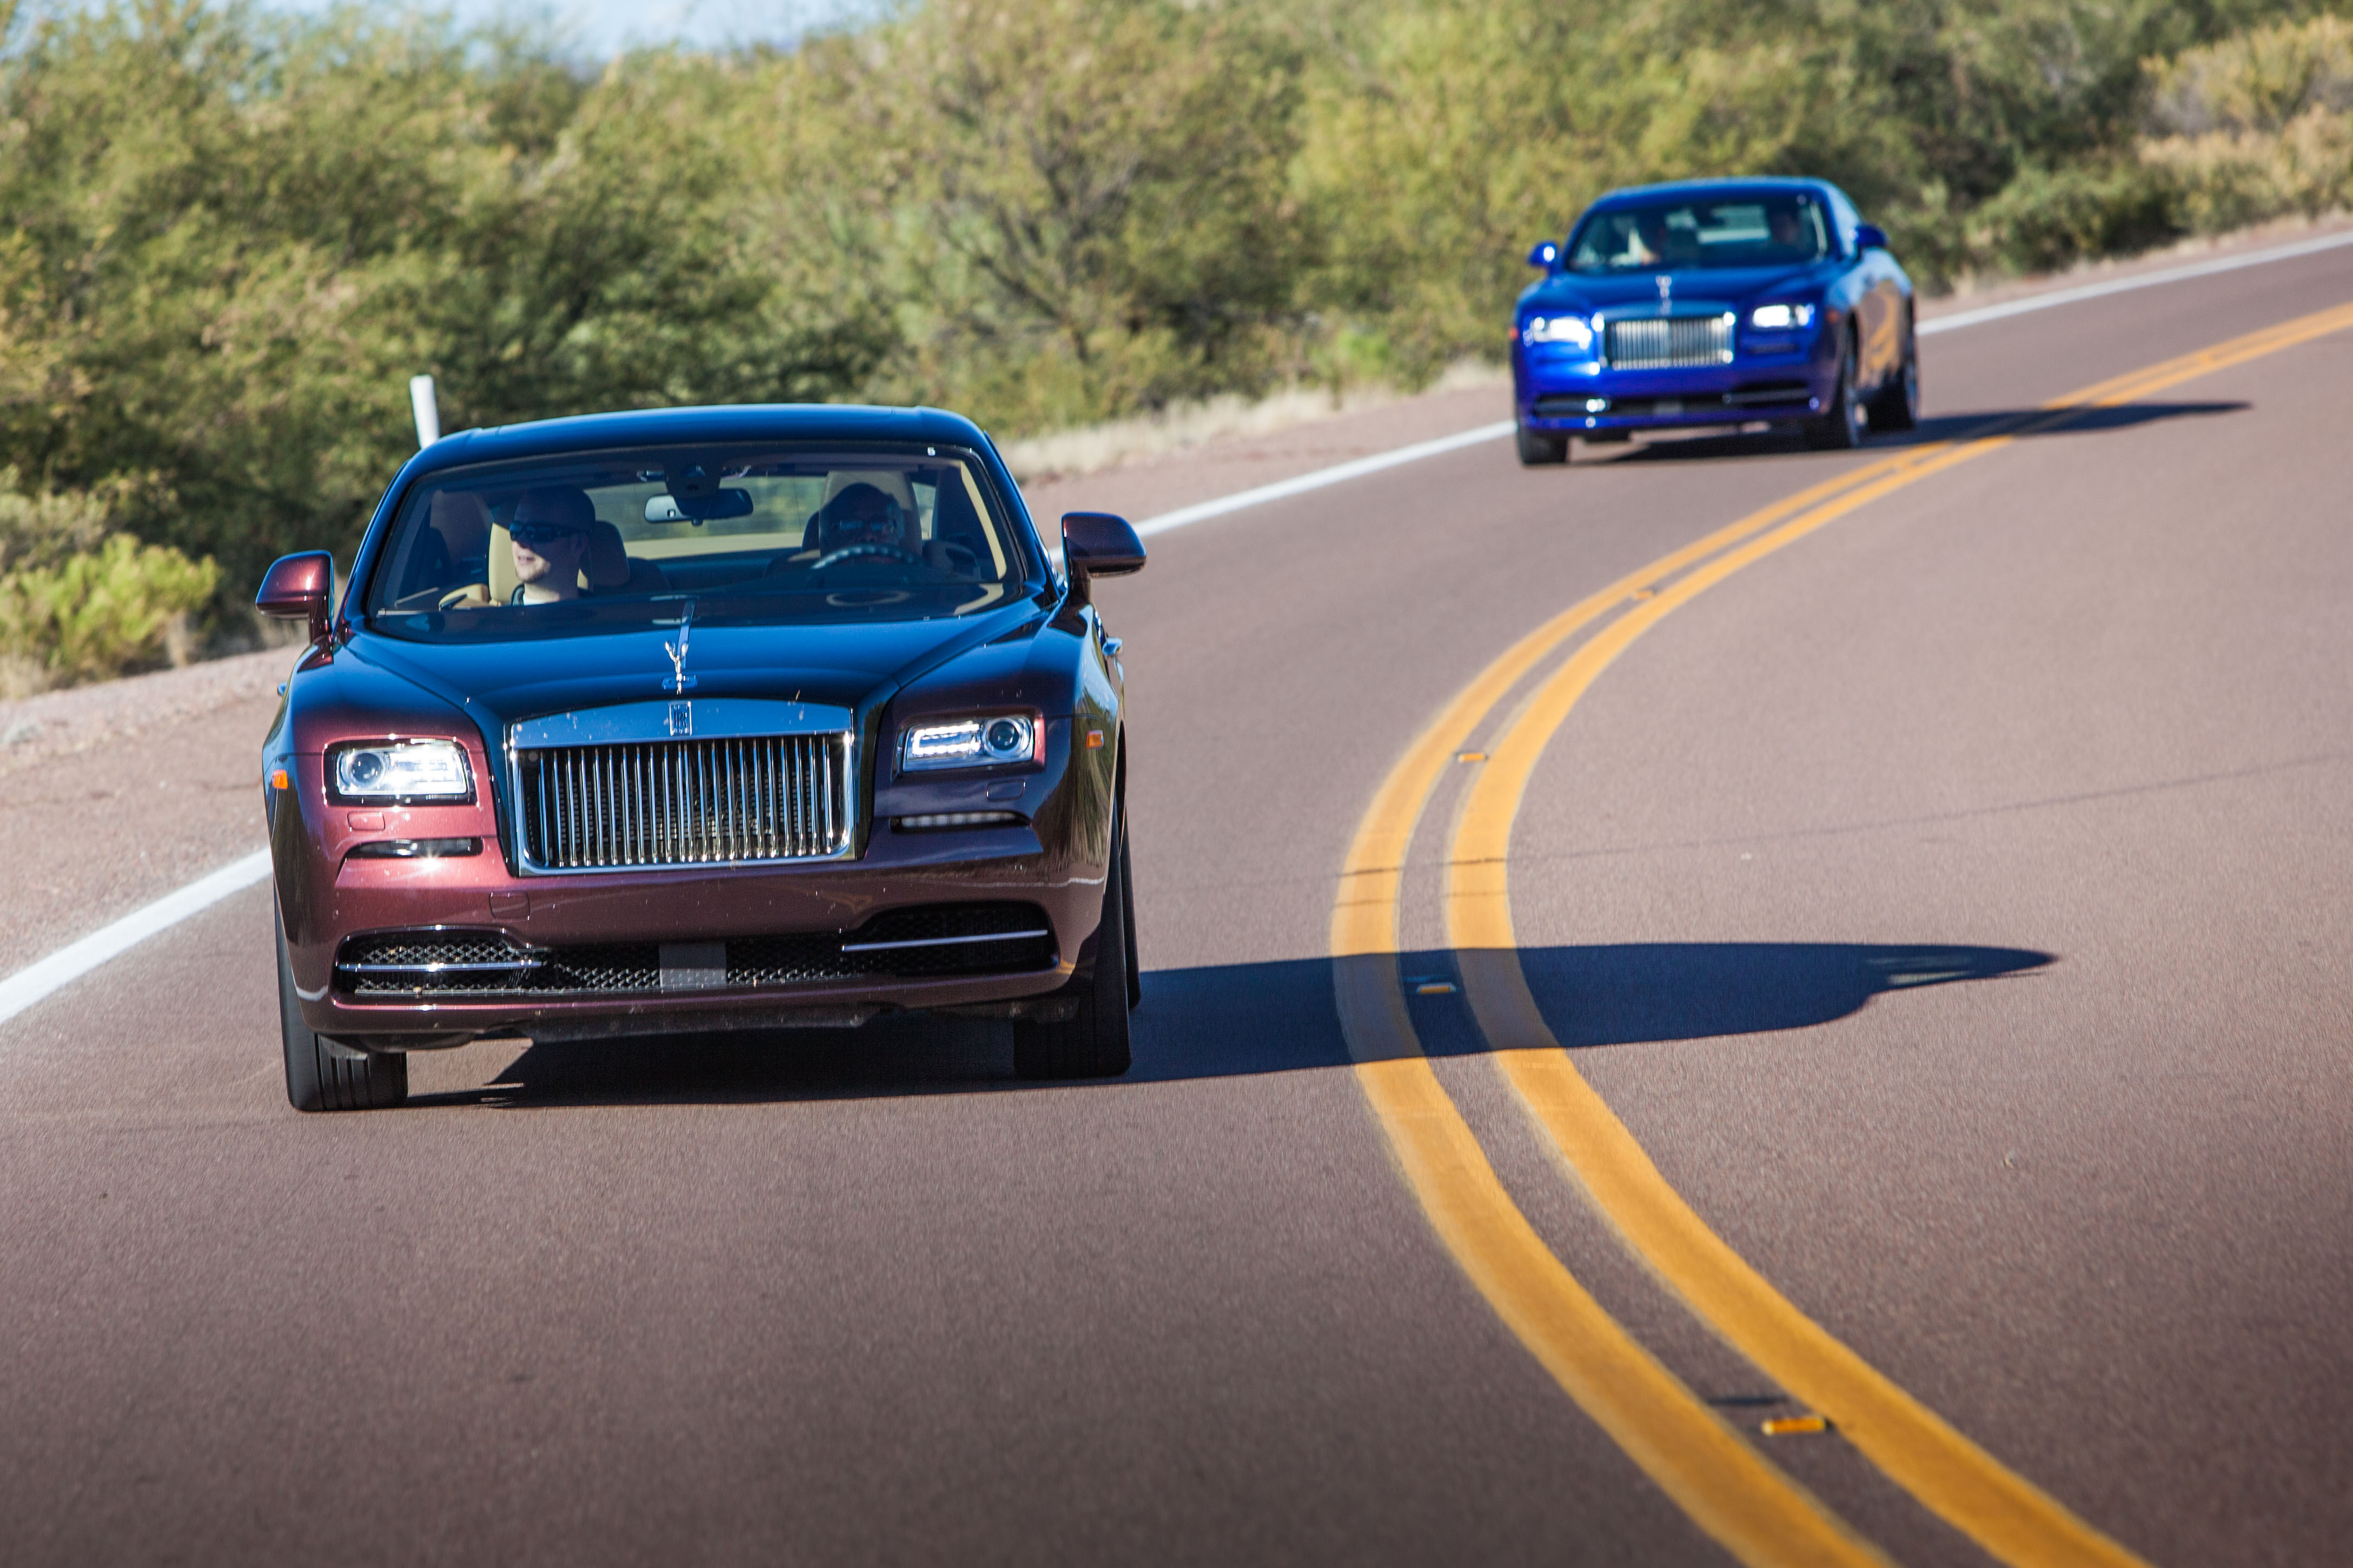 MG 6954 Exclusive: 2013 Rolls Royce Wraith   All You Need to Know